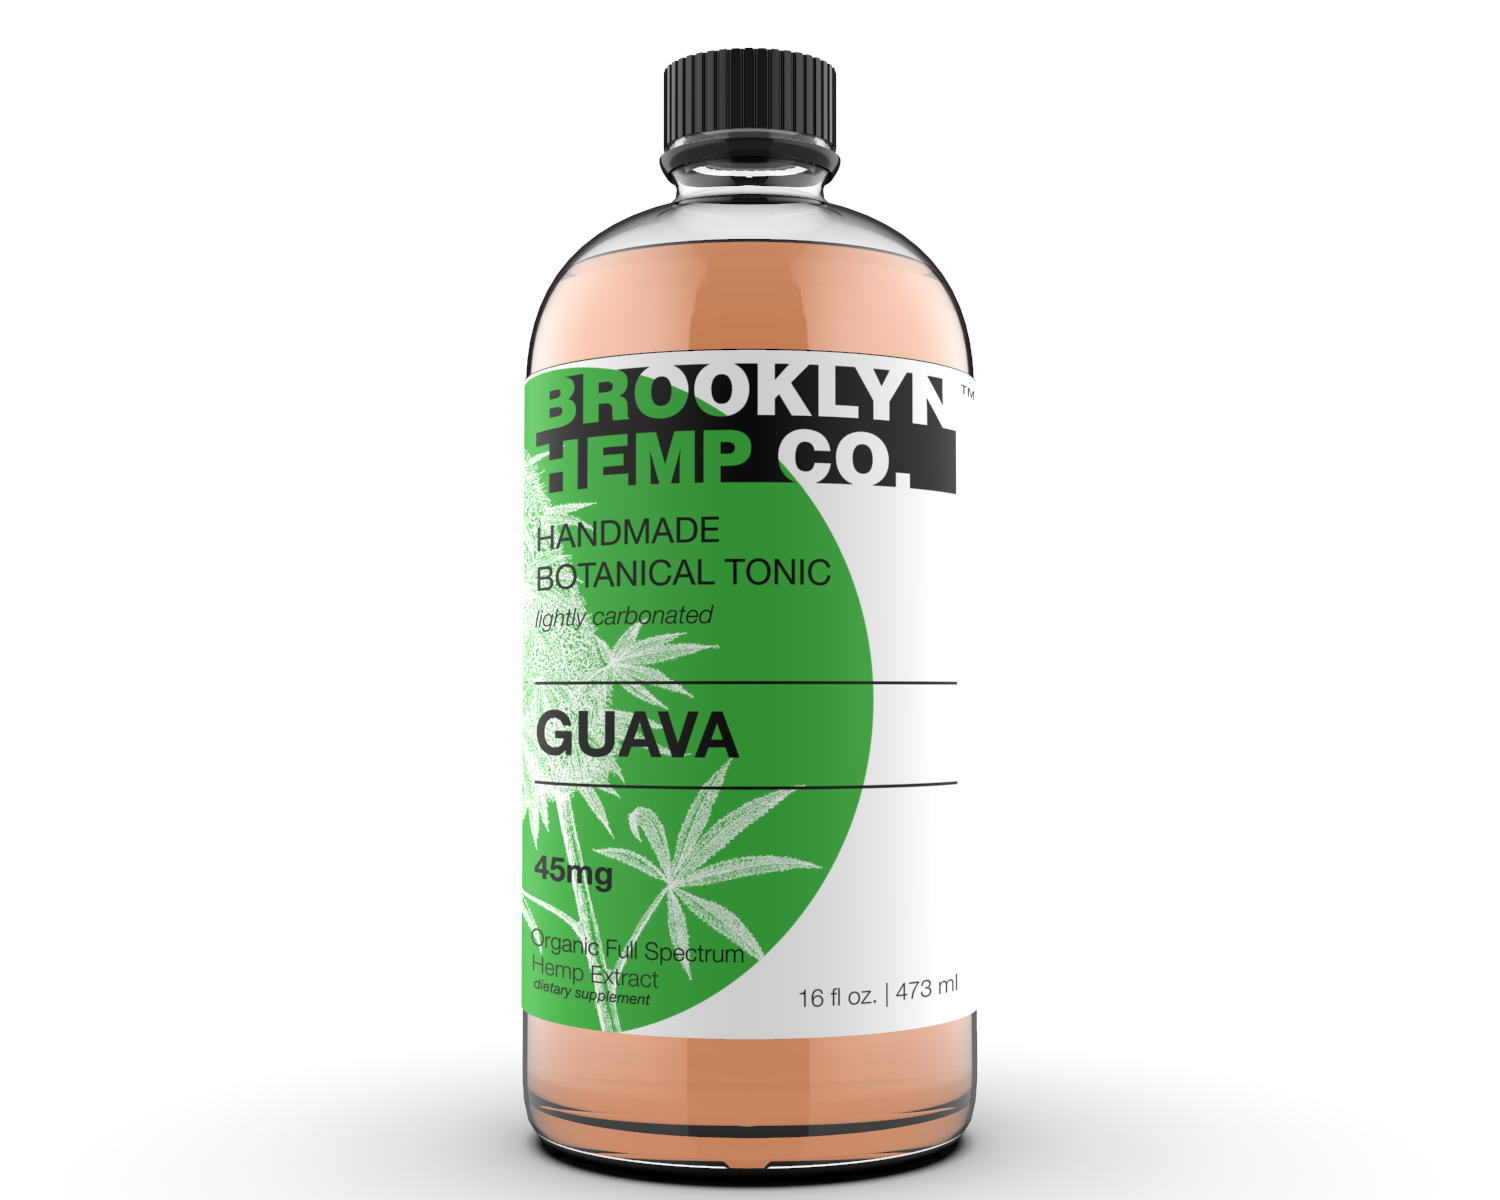 Guava Botanical Tonic